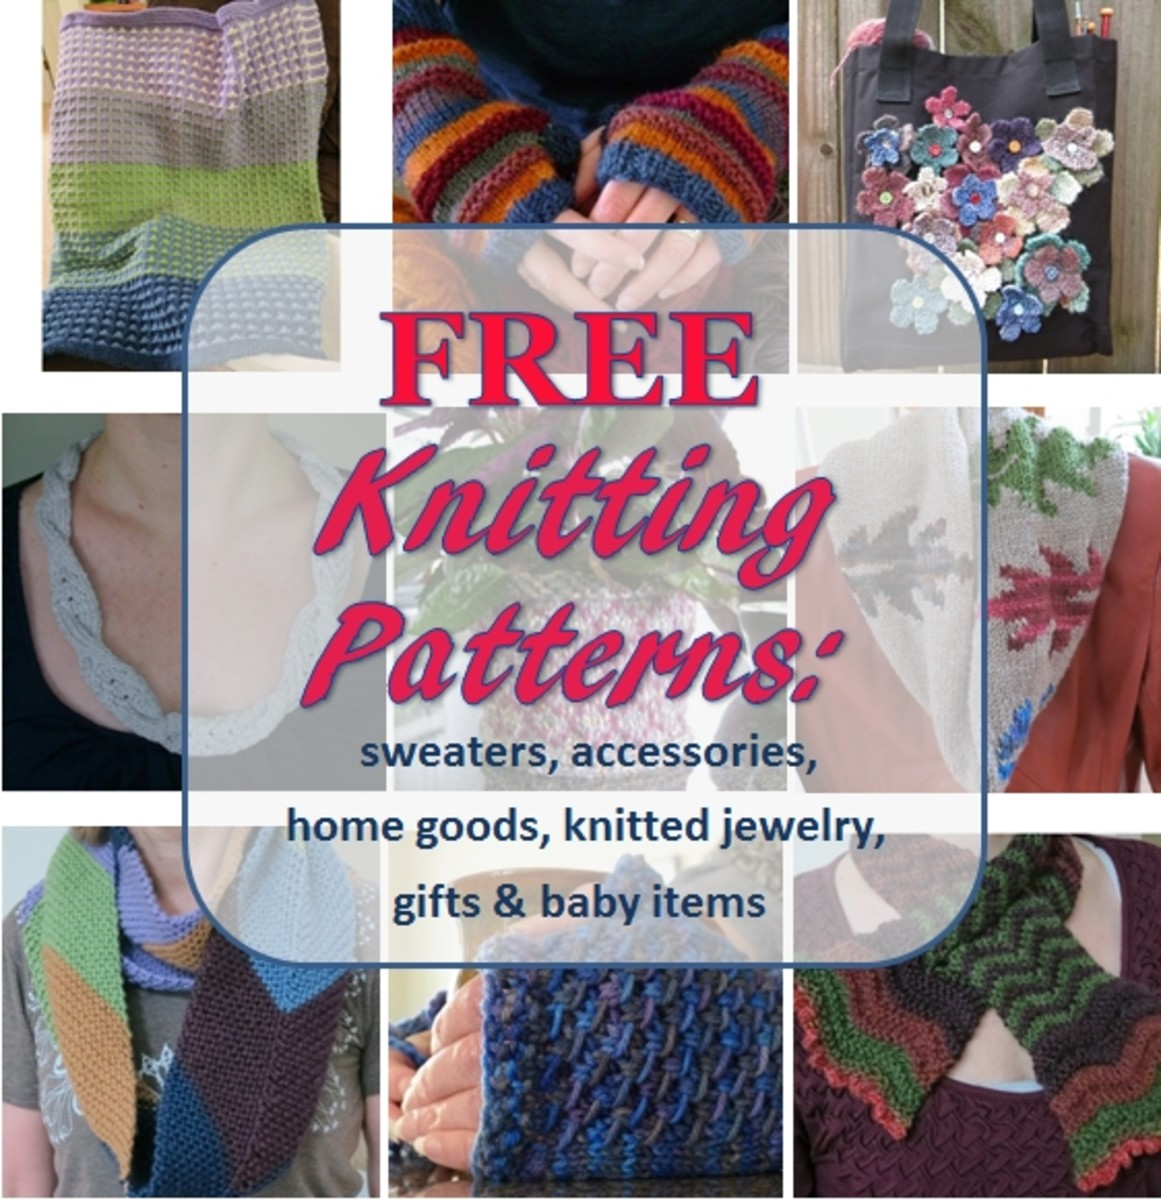 Free Knitting Patterns:  Colorful Accessories, Home Goods, Knitted Jewelry, and Baby Things